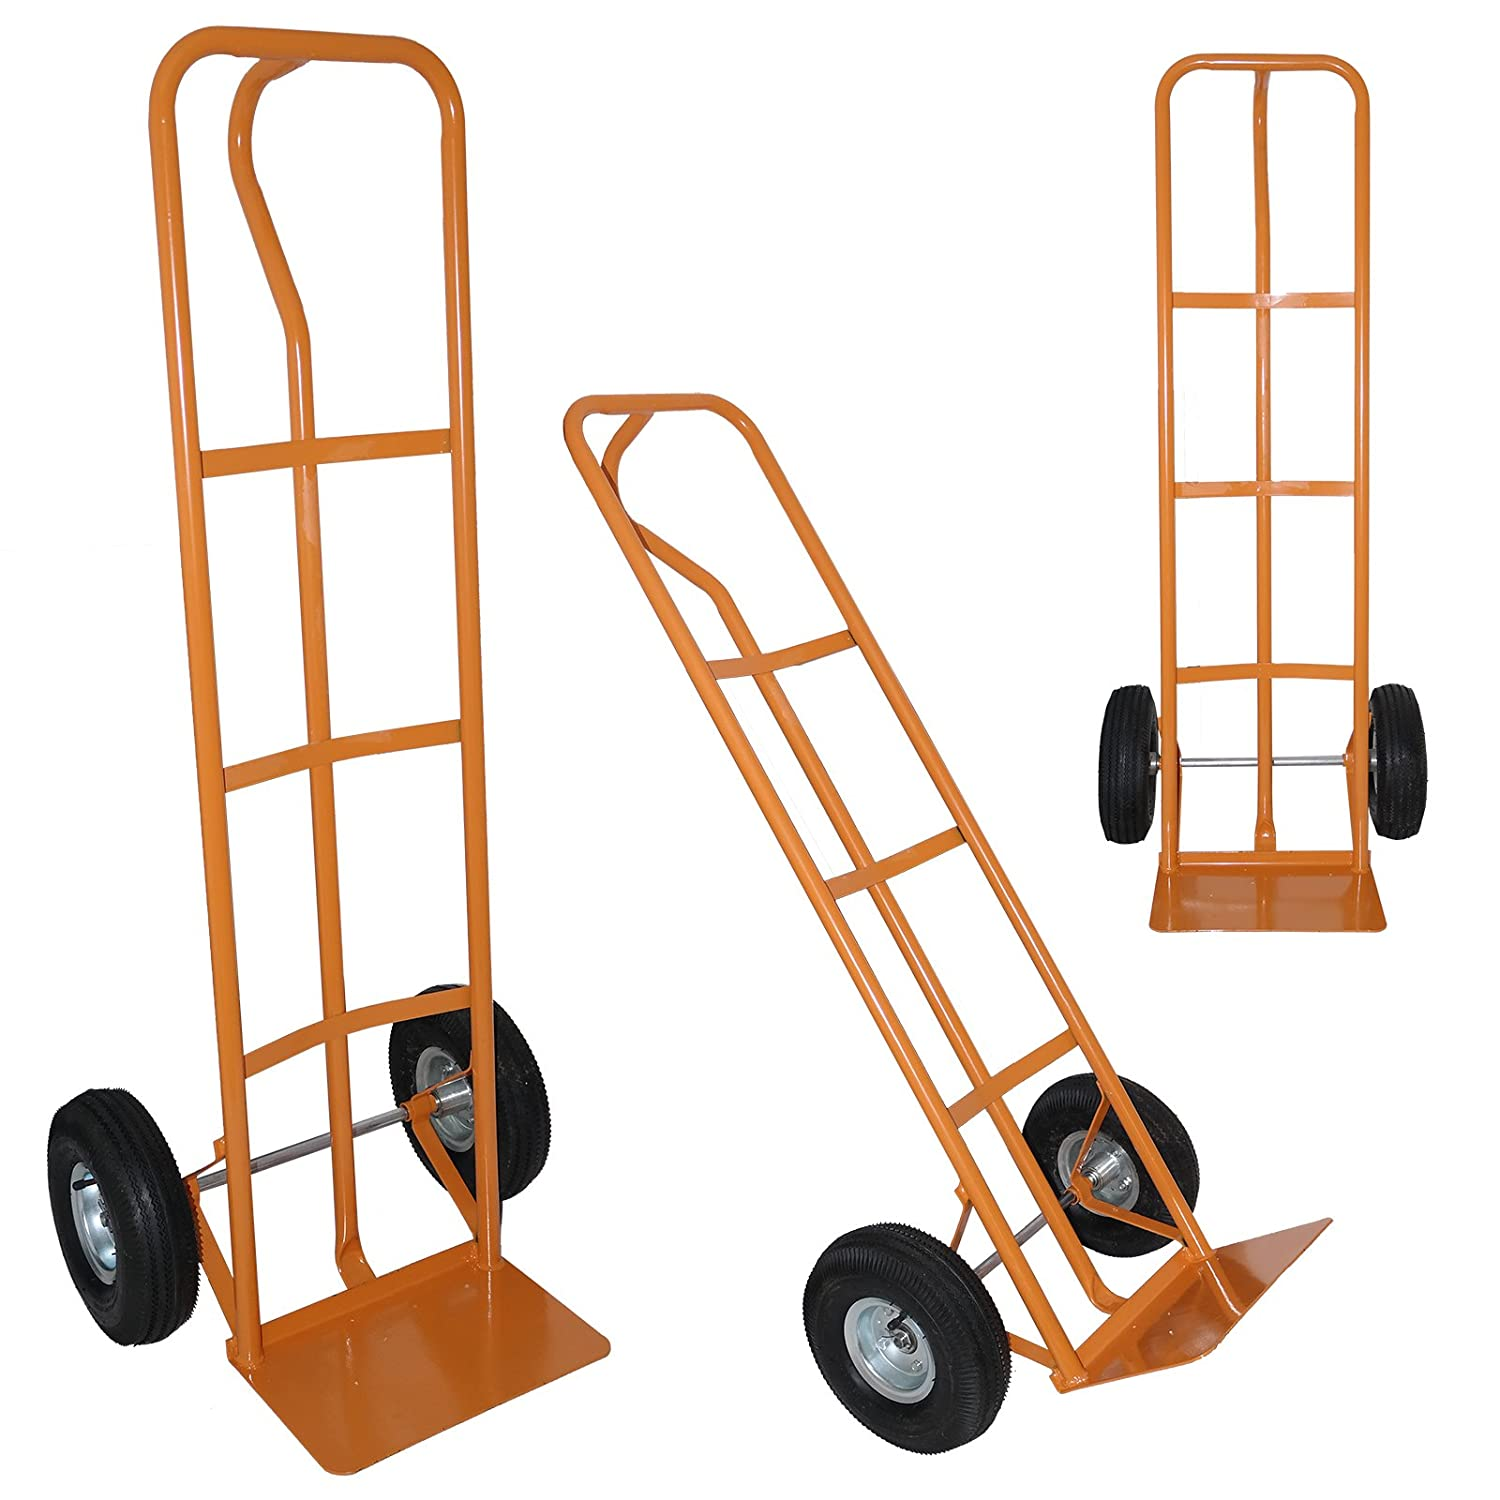 Marko Tools 440LB Heavy Duty Hand Trolley Industrial Sack Truck Barrow 200KG Cart Warehouse